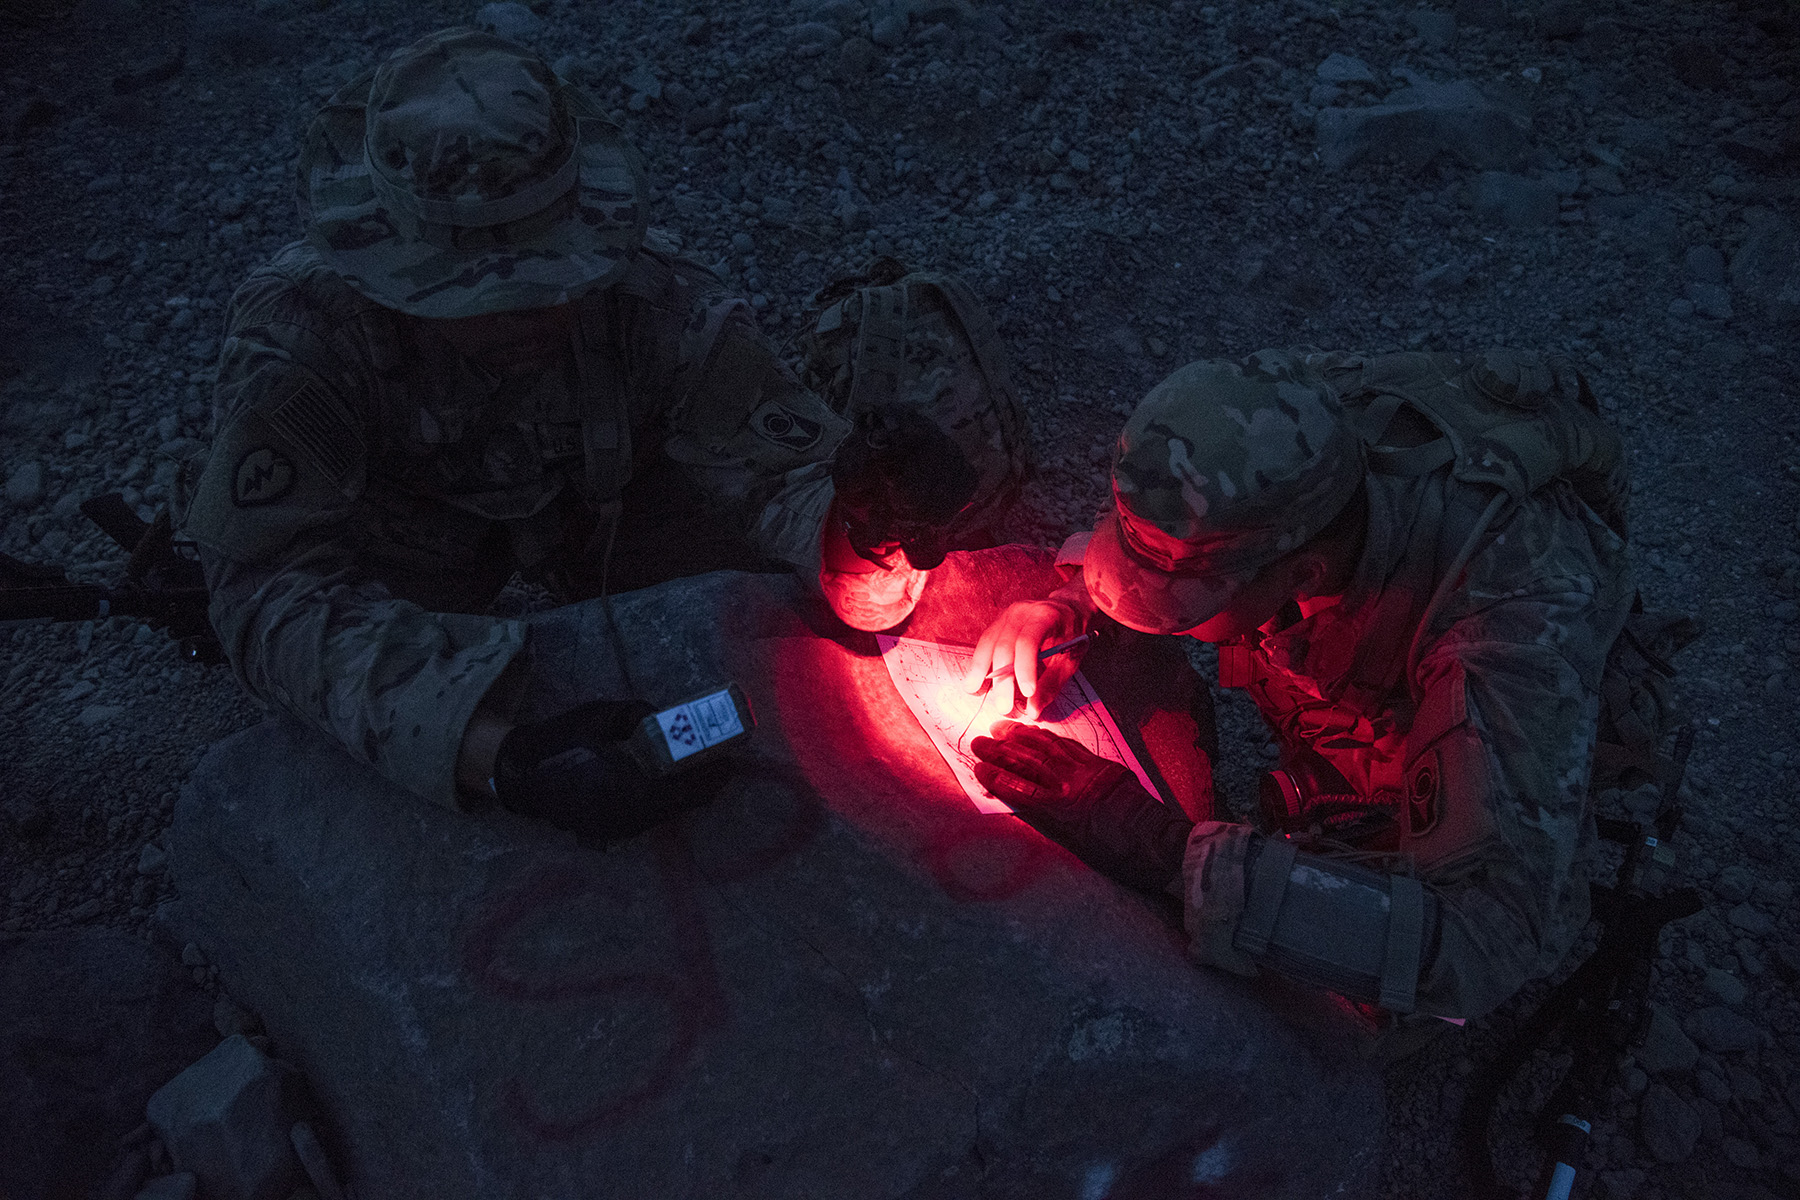 ARTA, DJIBOUTI- U.S. Army soldiers from the Alpha Company, 1st Battalion, 124th Infantry Regiment, plot out the first of three navigation points during night land navigation training, Aug. 5, 2016, in Arta, Djibouti. The soldiers completed day and night land navigation training along with mock casualty care, simulating calling for fire support and assembly and disassembly of the M4 carbine rifle. (U.S. Air Force photo by Staff Sgt. Tiffany DeNault)